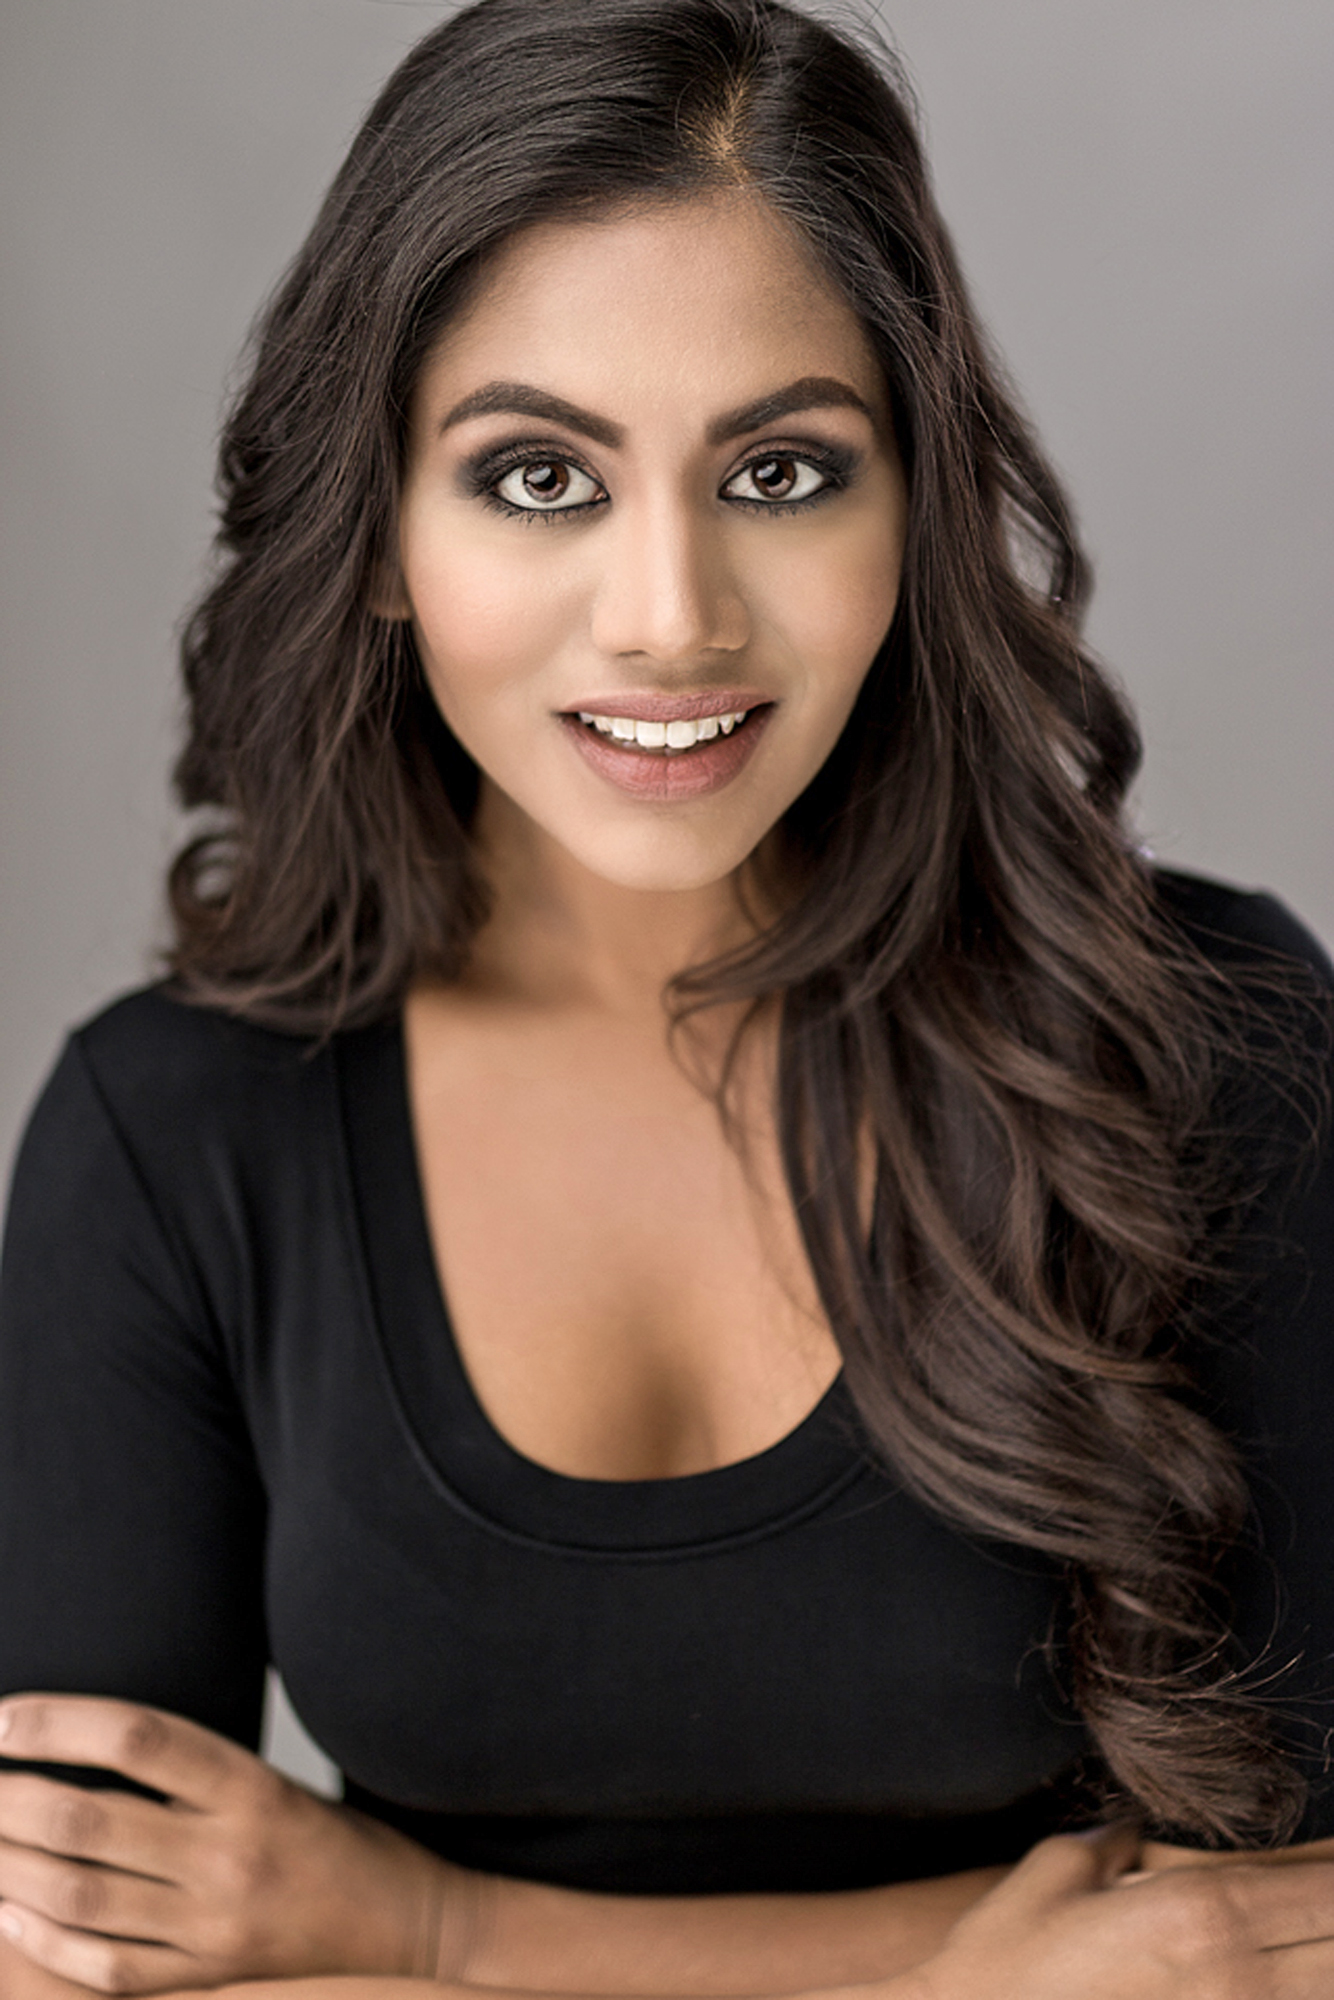 BEAUTY AND FITNESS GUIDE FOR THE SOUTH ASIAN BRIDE ...